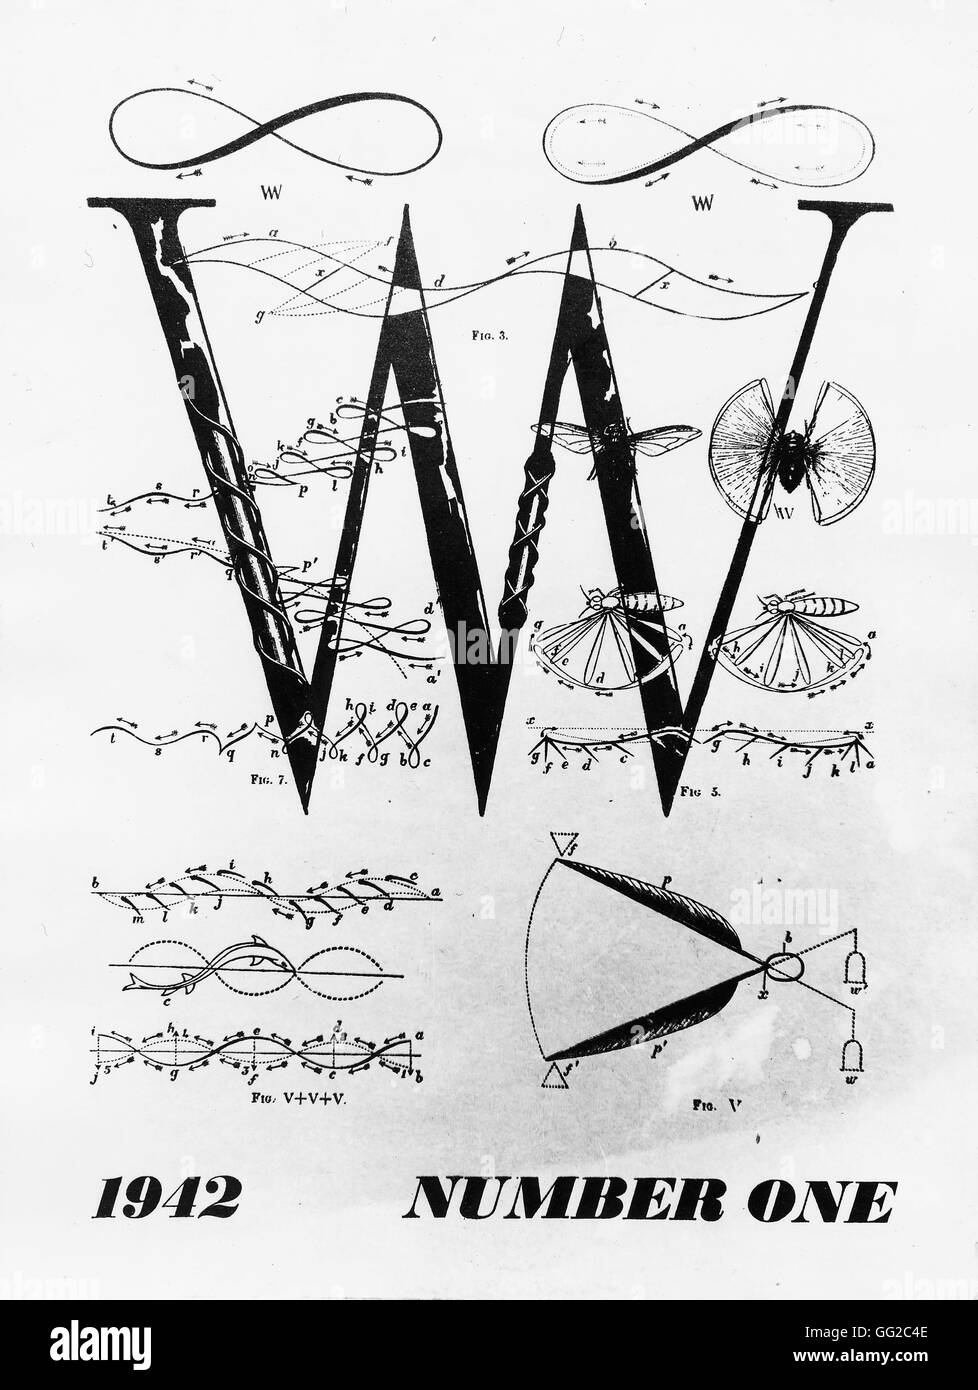 First issue of the surrealist magazine 'VVV', founded by Breton, Duchamp and Ernst 1942 France - Stock Image